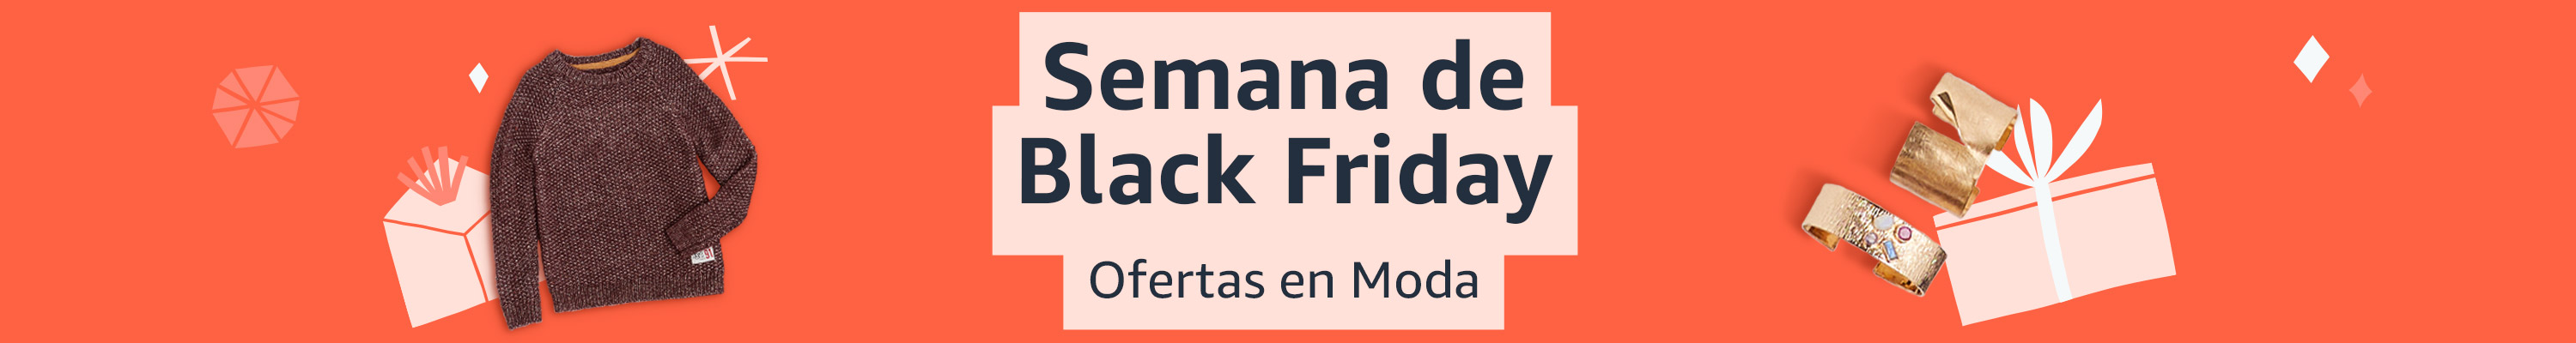 Semana de Black Friday 2020